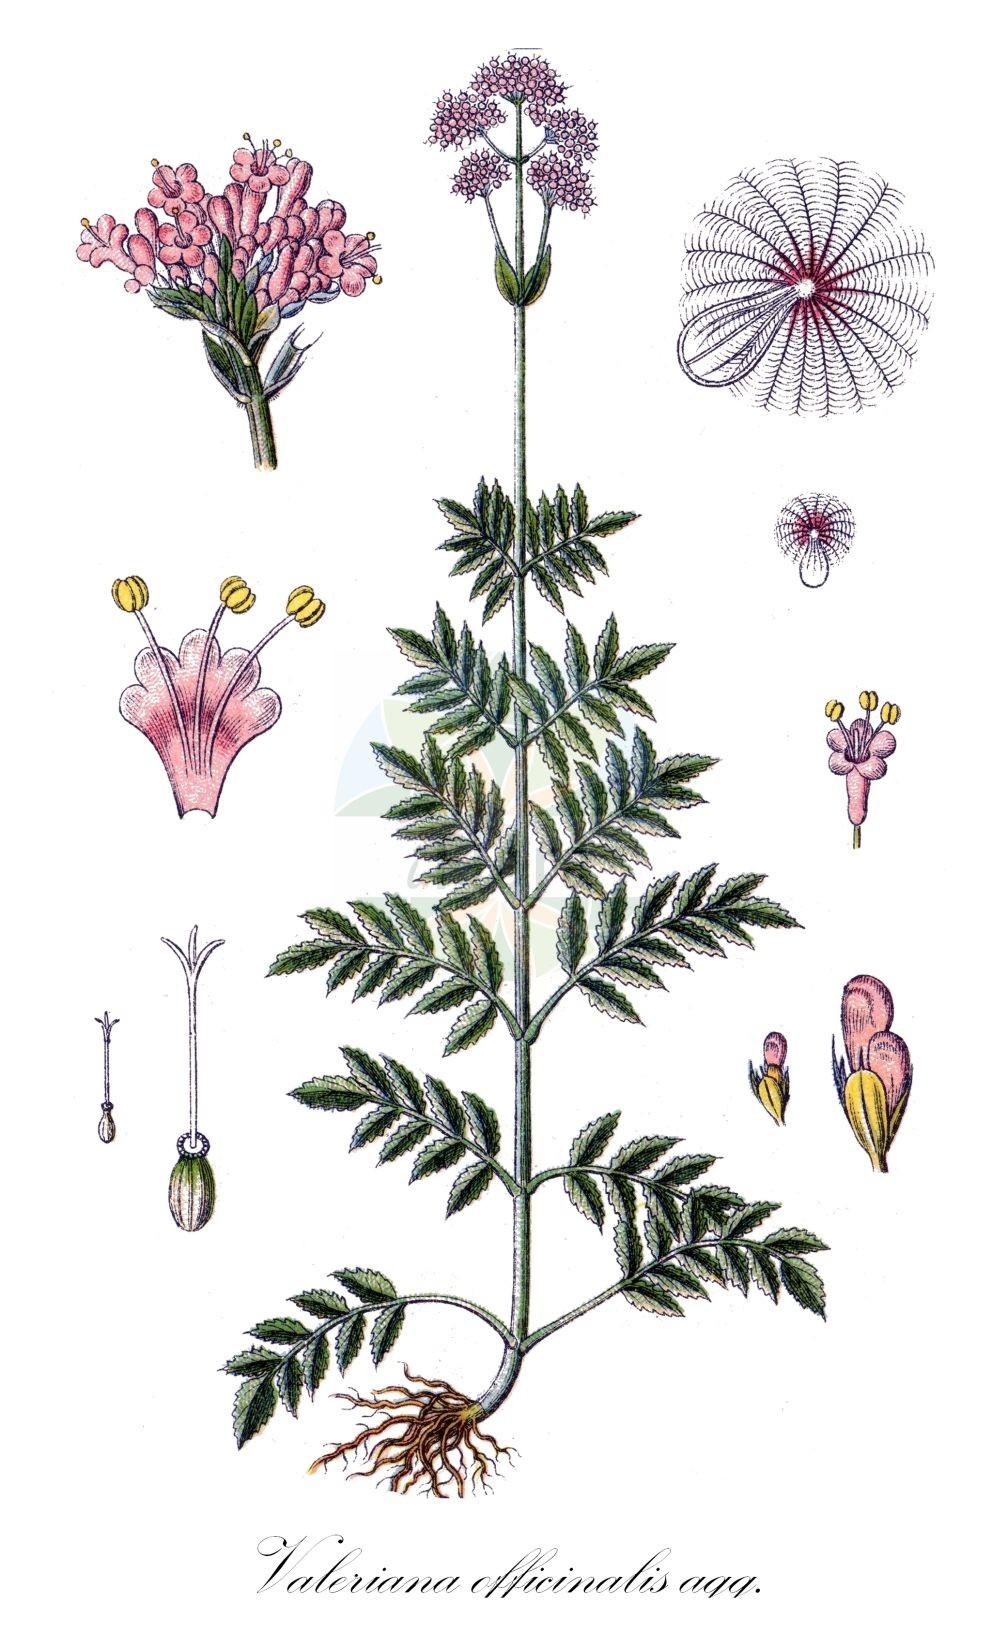 Historische Abbildung von Valeriana officinalis agg. (Arznei-Baldrian - Common Valerian). Das Bild zeigt Blatt, Bluete, Frucht und Same. ---- Historical Drawing of Valeriana officinalis agg. (Arznei-Baldrian - Common Valerian).The image is showing leaf, flower, fruit and seed.(Valeriana officinalis agg.,Arznei-Baldrian,Common Valerian,Garden Valerian,Great Wild Valerian,Valeriana,Baldrian,Valerian,Caprifoliaceae,Geissblattgewaechse,Honeysuckle family,Blatt,Bluete,Frucht,Same,leaf,flower,fruit,seed,Sturm (1796f))